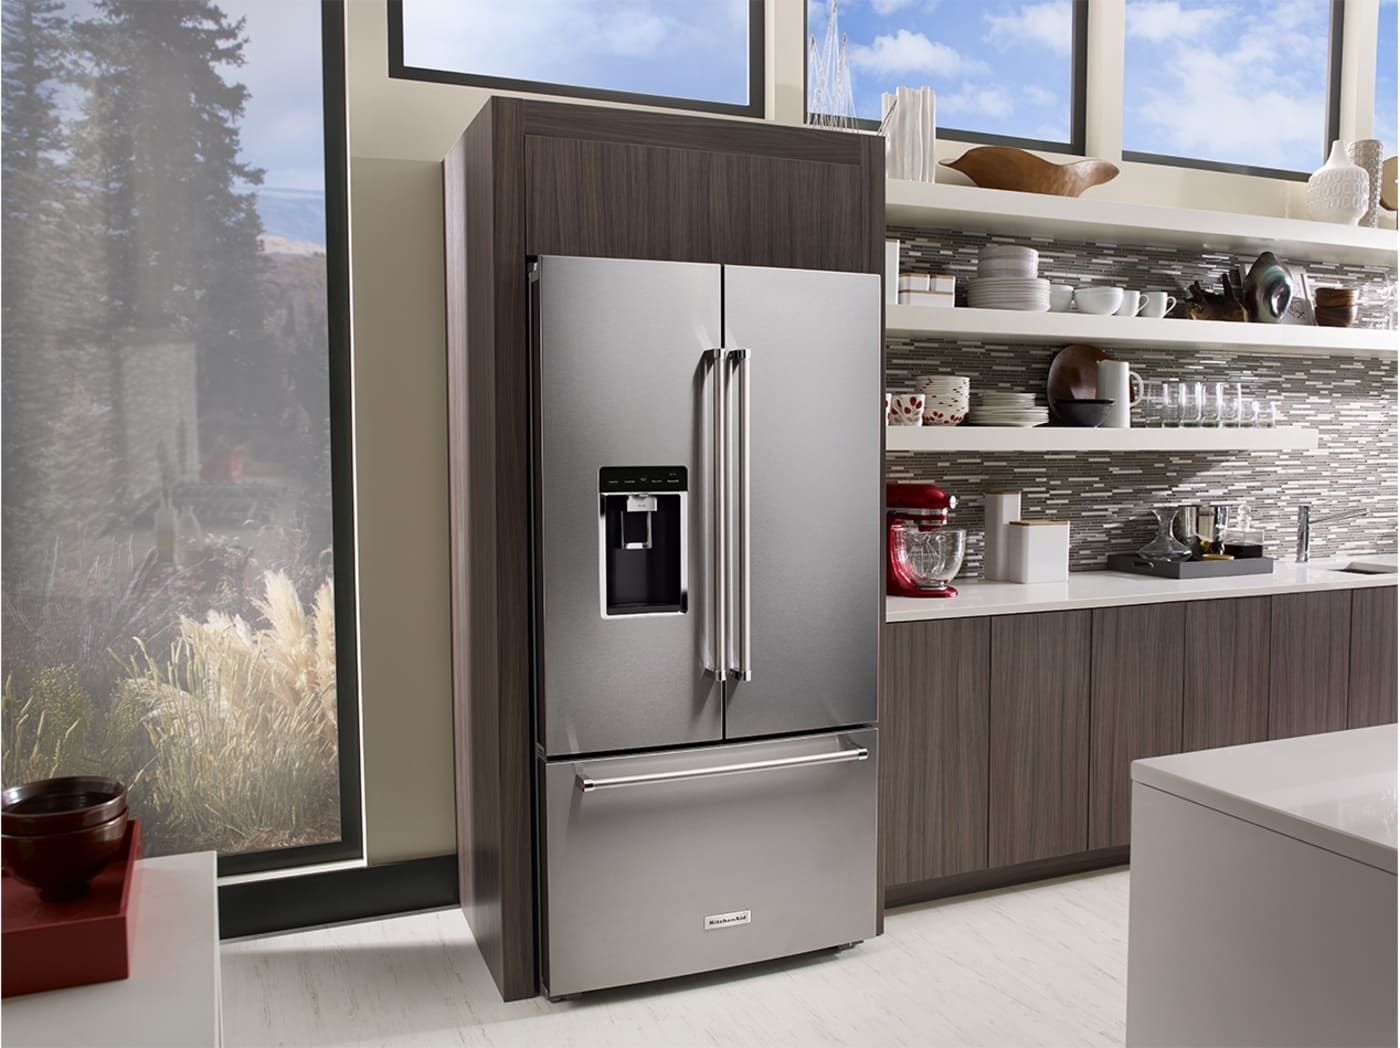 Krfc604fss By Kitchenaid French Door Refrigerators Goedekers Com French Door Refrigerator Kitchen Aid Counter Depth French Door Refrigerator